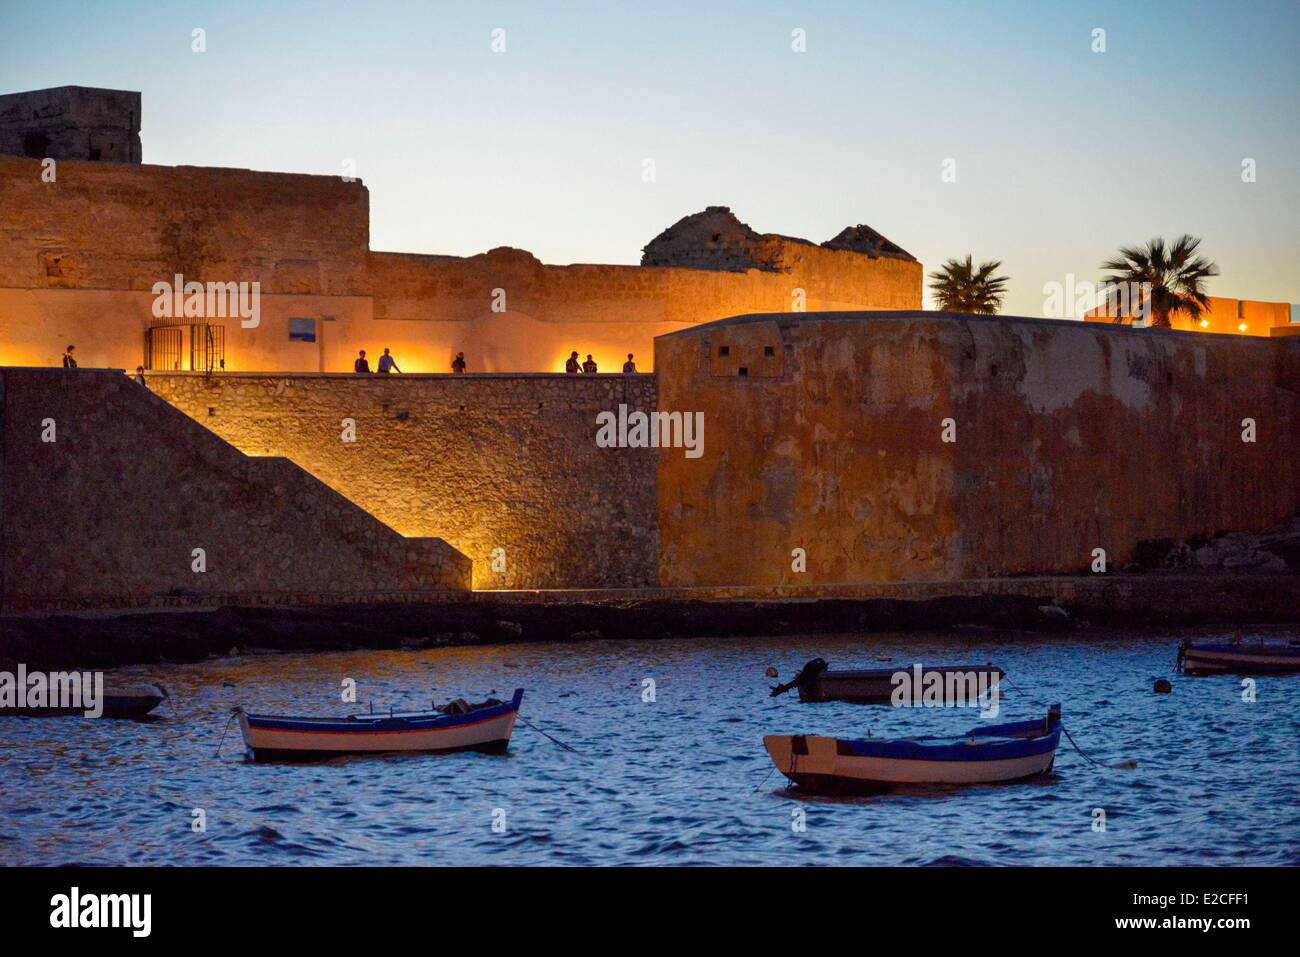 Italy, Sicily, Trapani, historic center, Conca fortress illuminated at dusk with boats on the water in the foreground - Stock Image